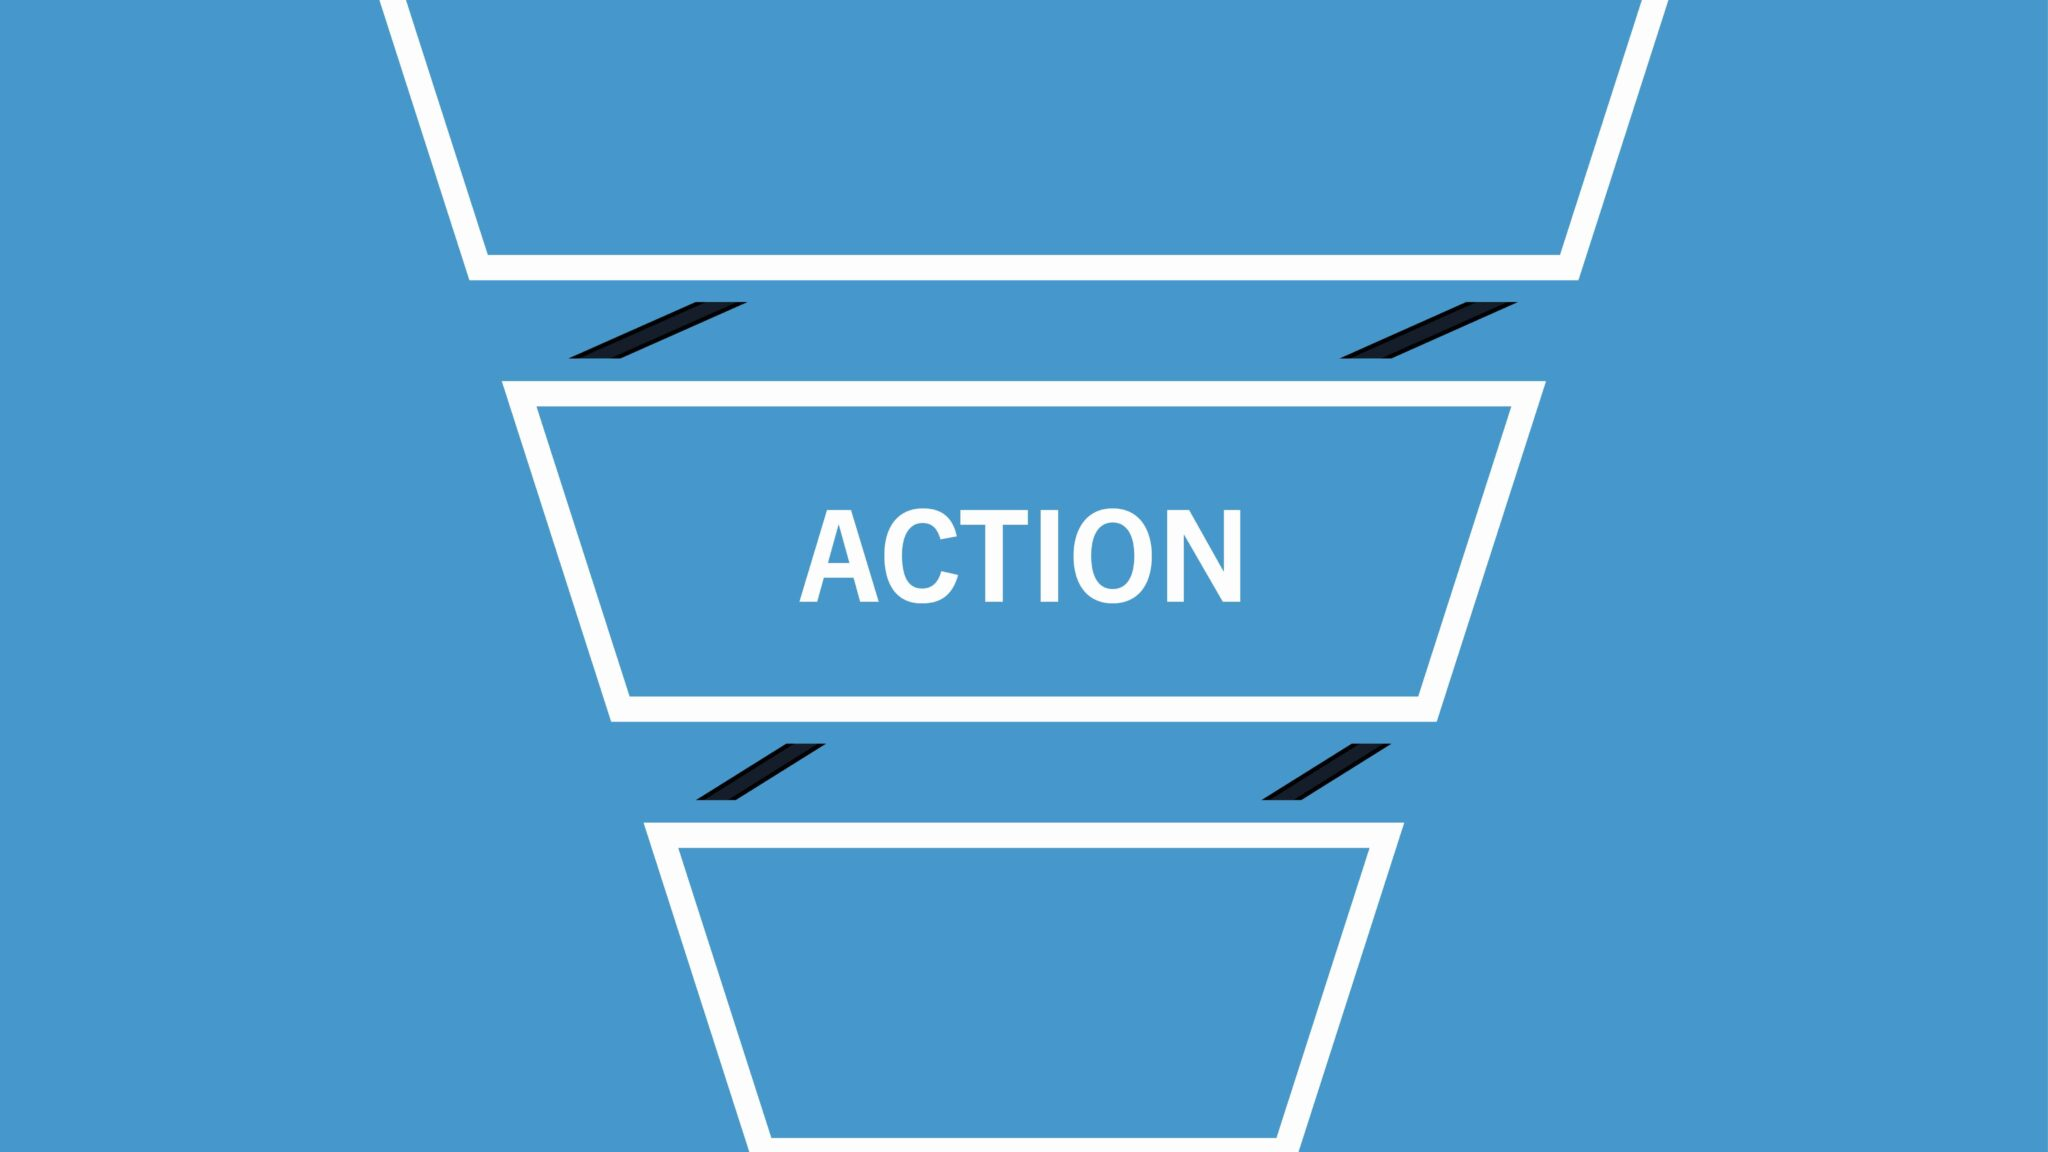 action phase of the marketing funnel